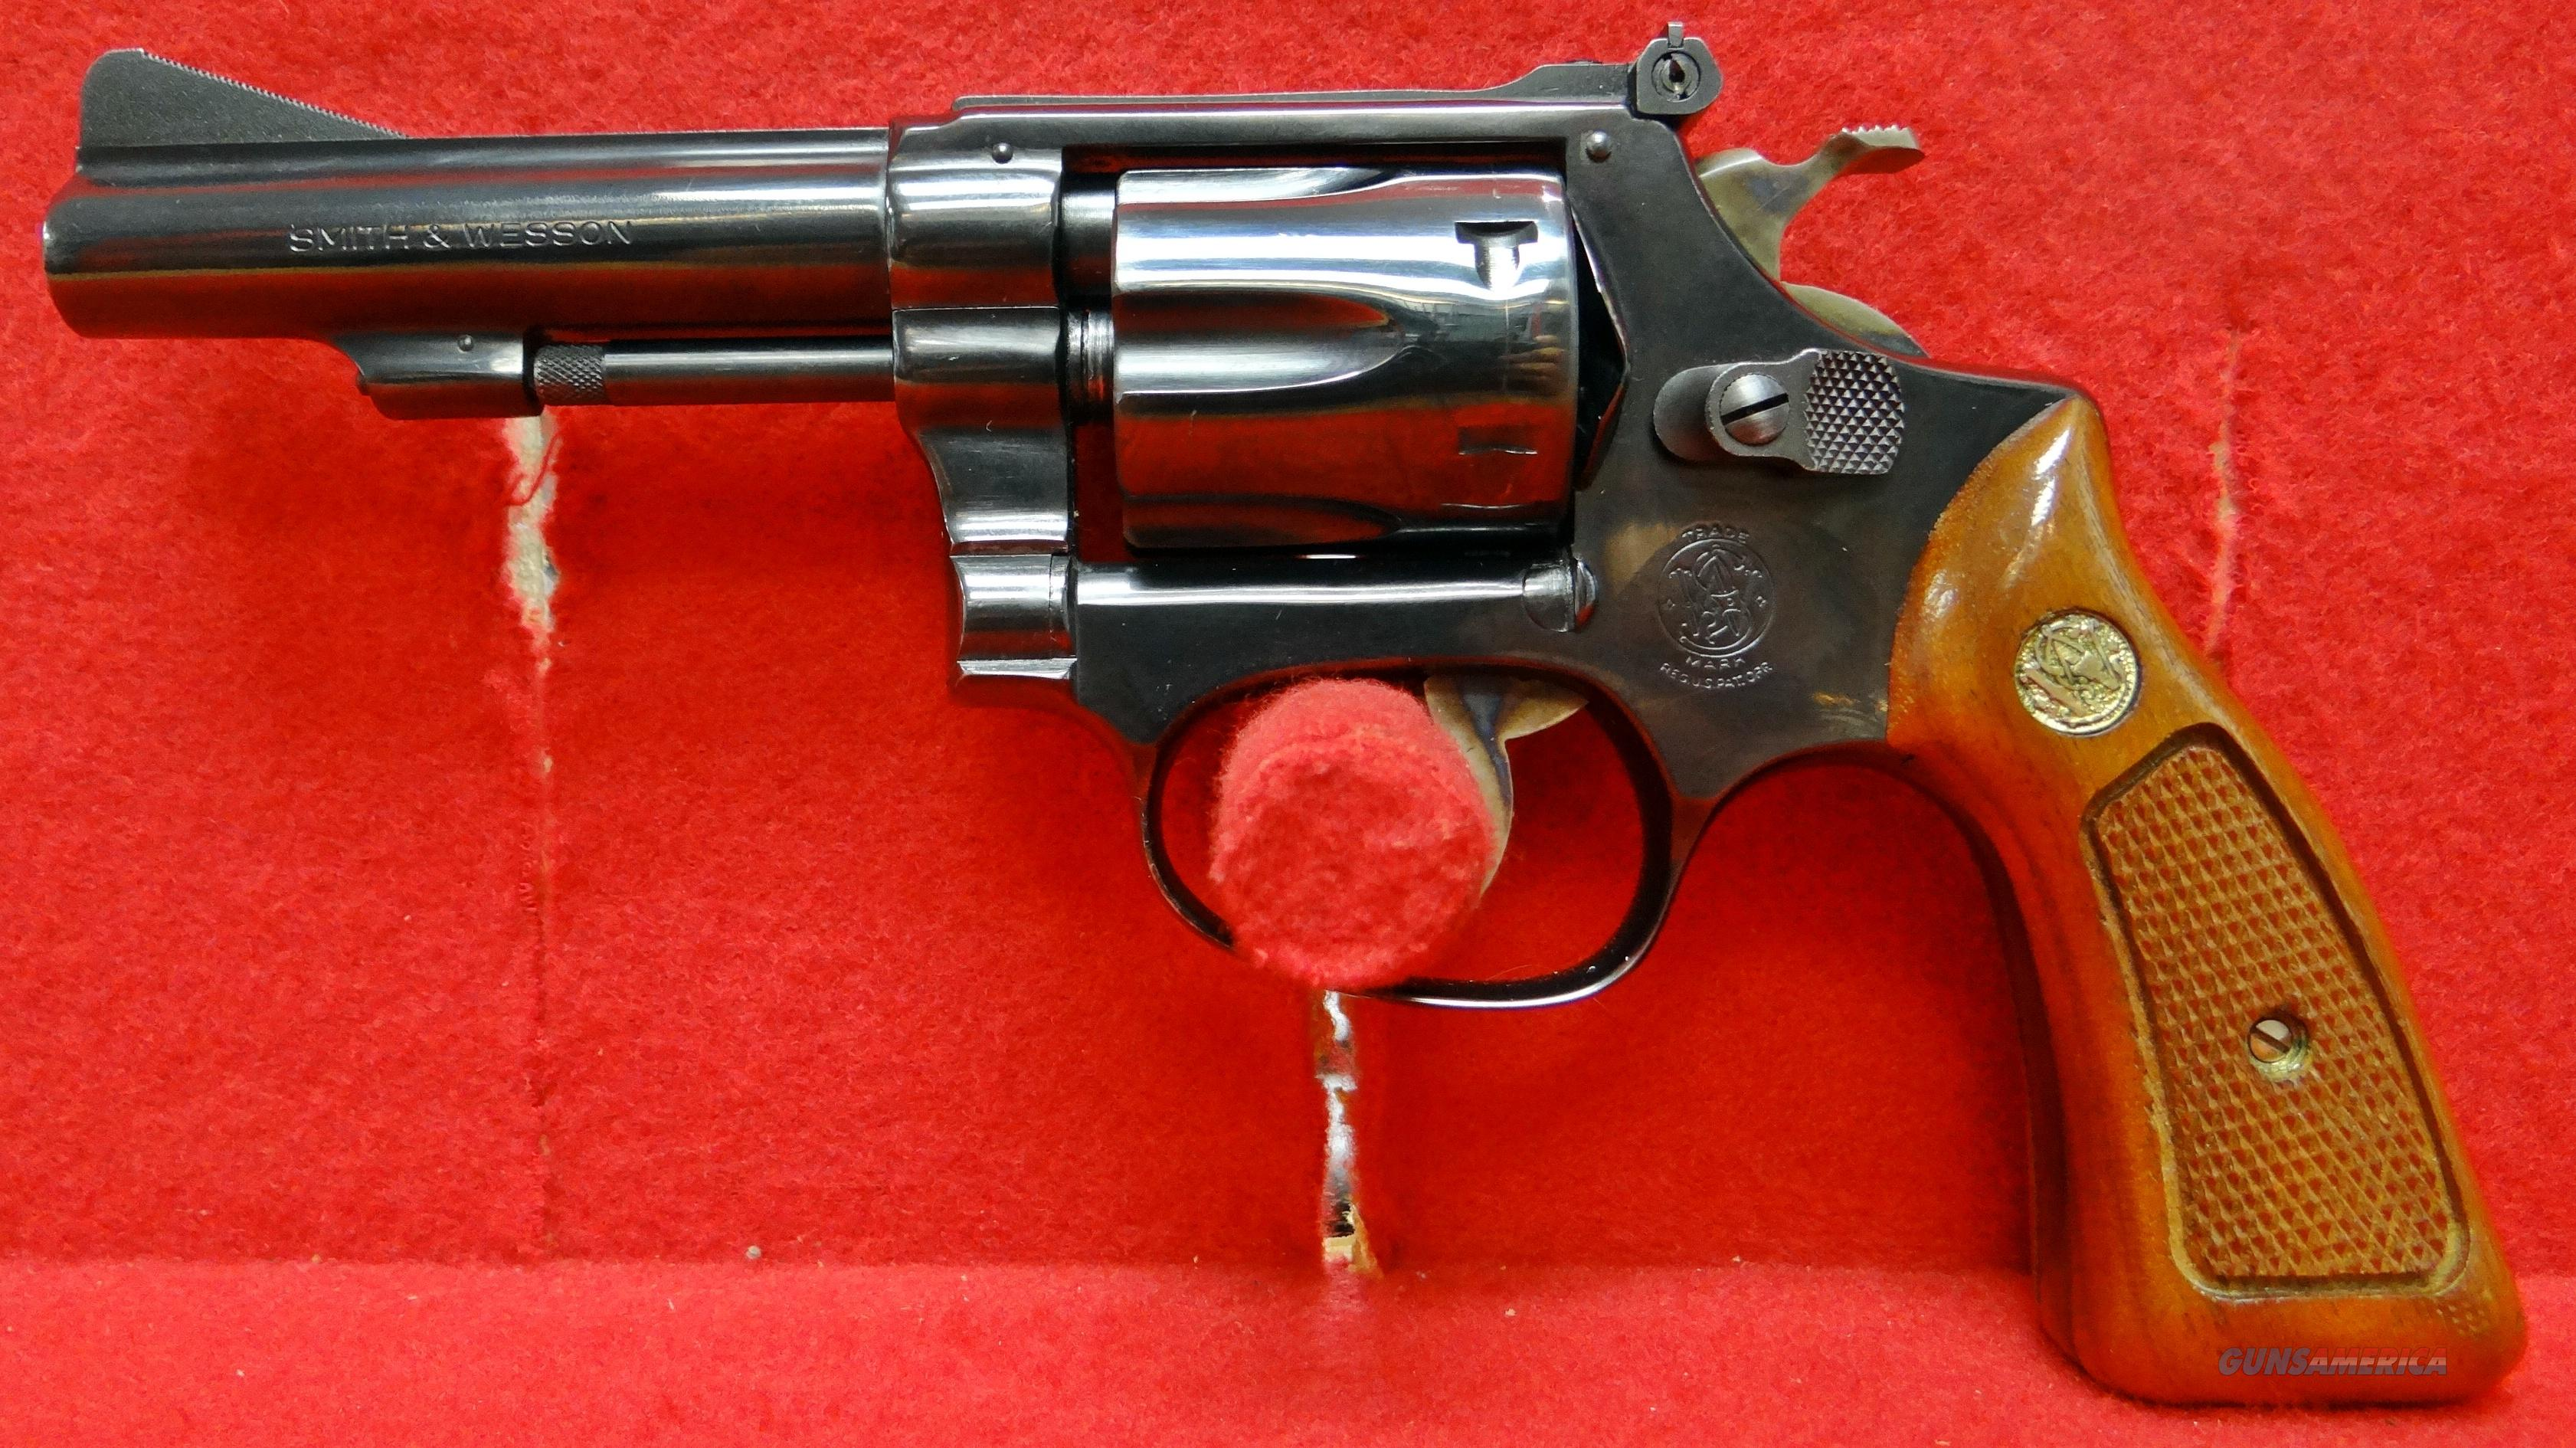 SMITH & WESSON MODEL 51 22 M.R.F  Guns > Pistols > Smith & Wesson Revolvers > Pocket Pistols